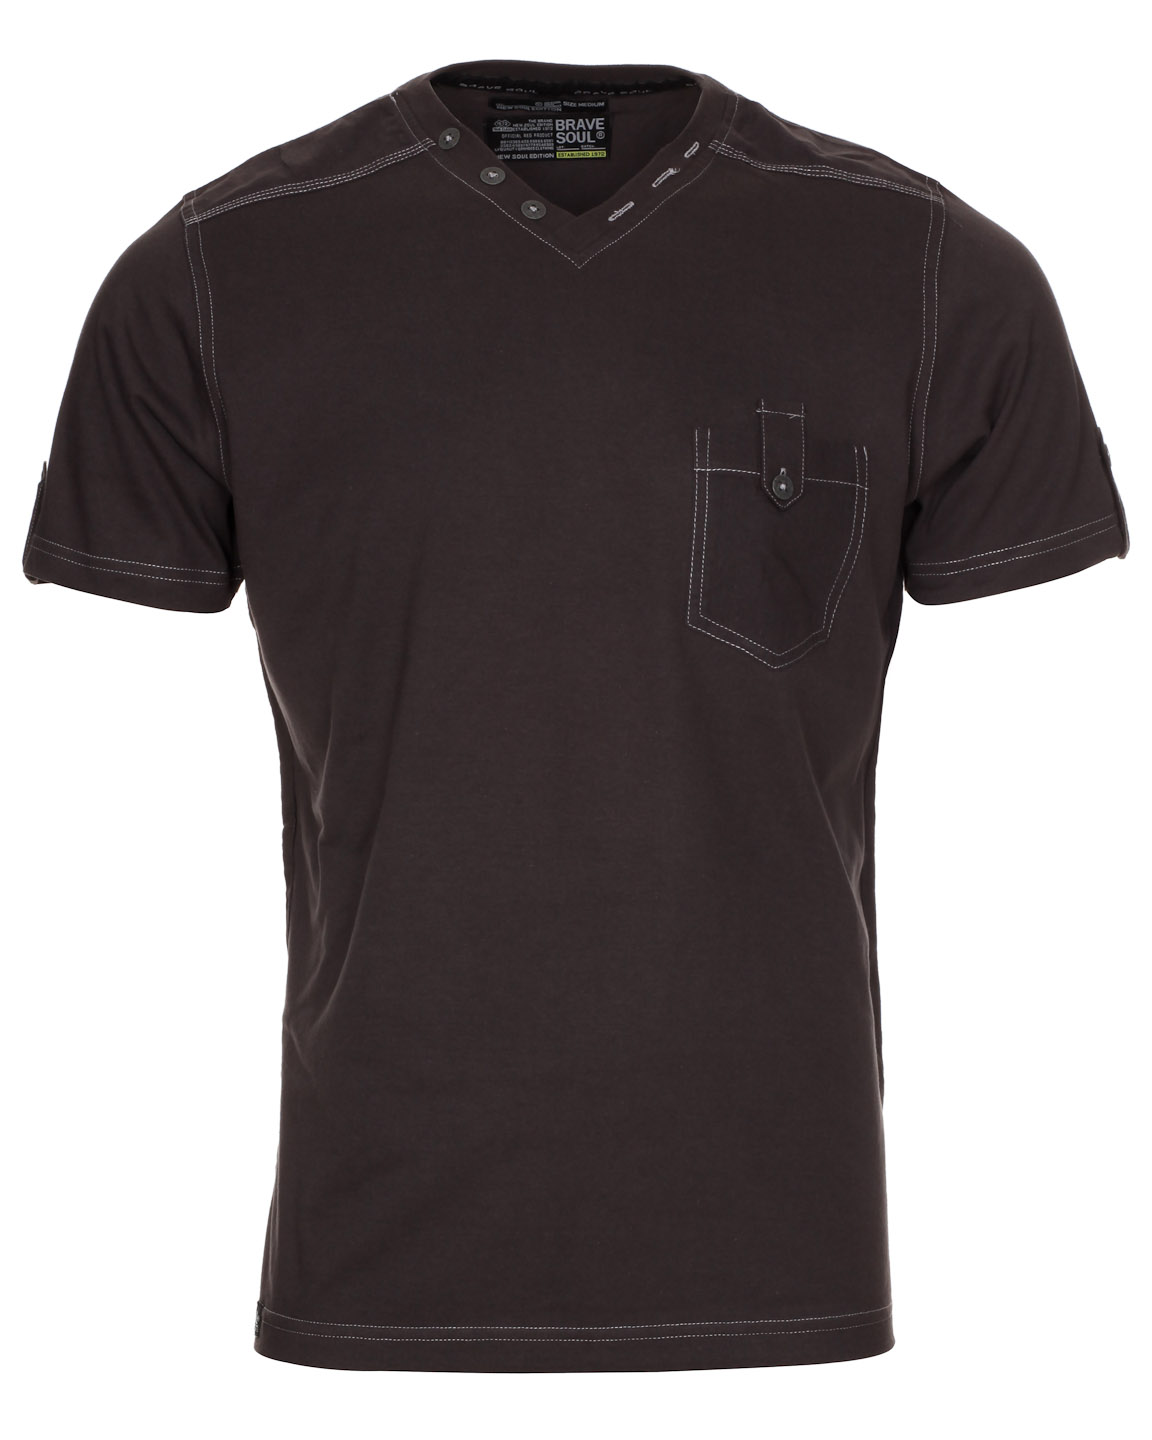 Blue-Inc-Mens-Brave-Soul-V-Neck-Placket-T-Shirt-Dark-Charcoal